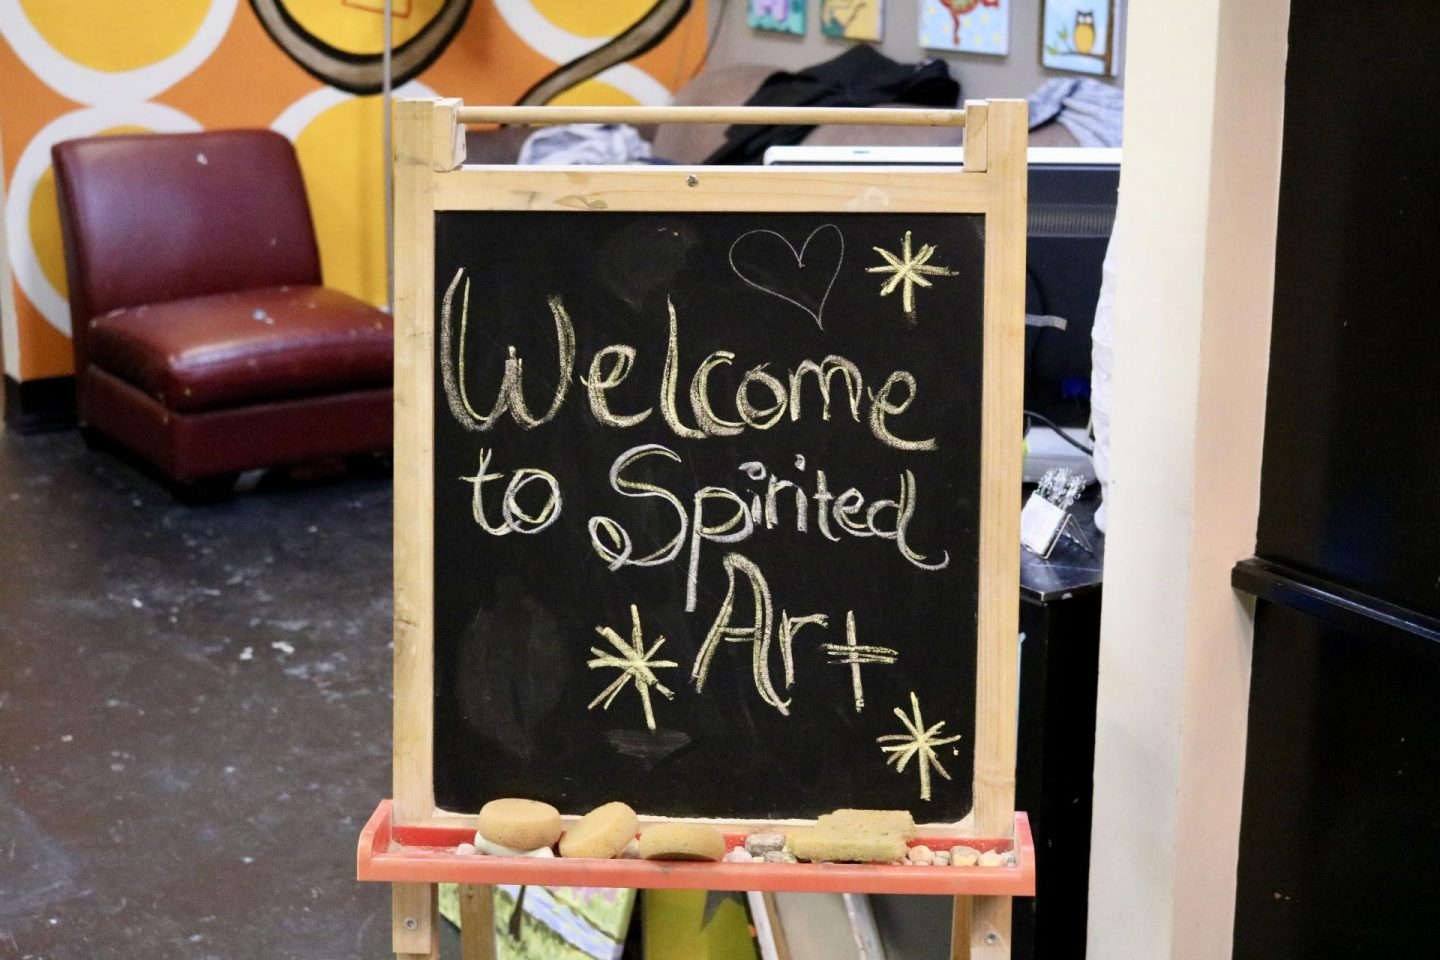 Spirited Art Calendar Huntsville Al : Things to remember while painting at spirited art